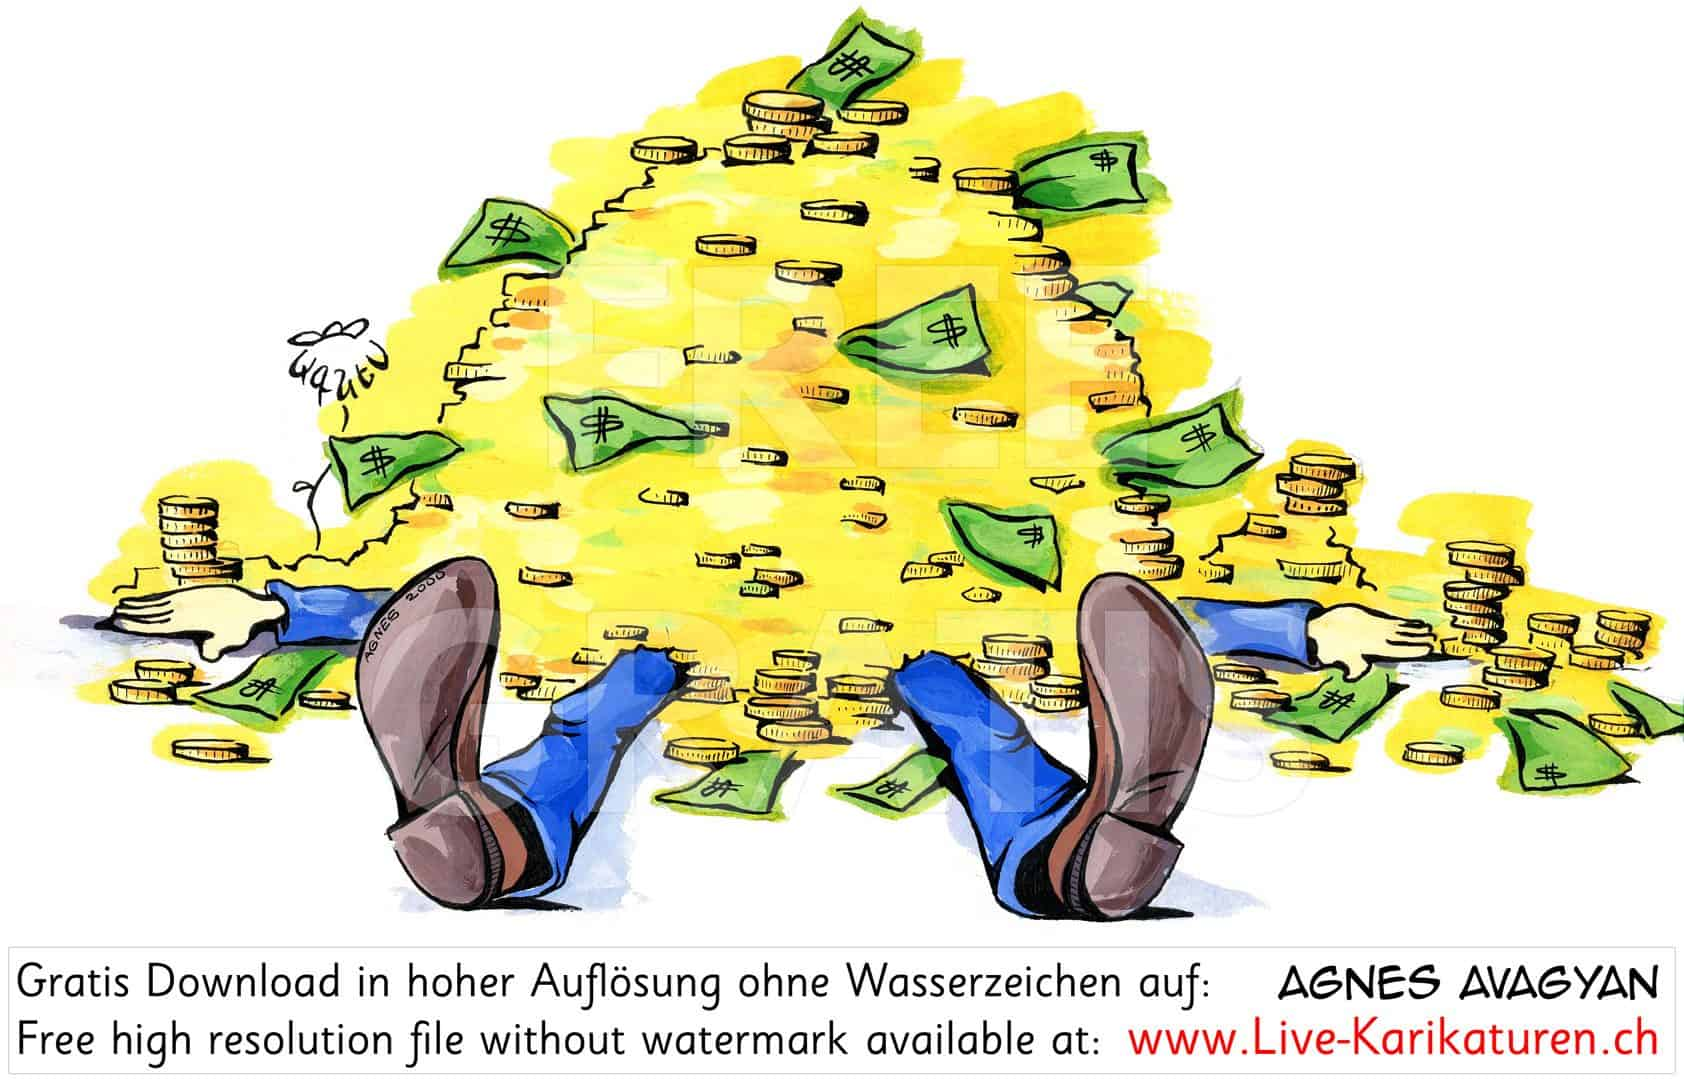 Geld erschlagen Muenzen Noten reich Reichtum Gier Kredit Manager Banker Abzocker Dollar Opfer Masslosigkeit Geldberg Gold Agnes Karikaturen gratis free Clipart Comic Cartoon Zeichnung c